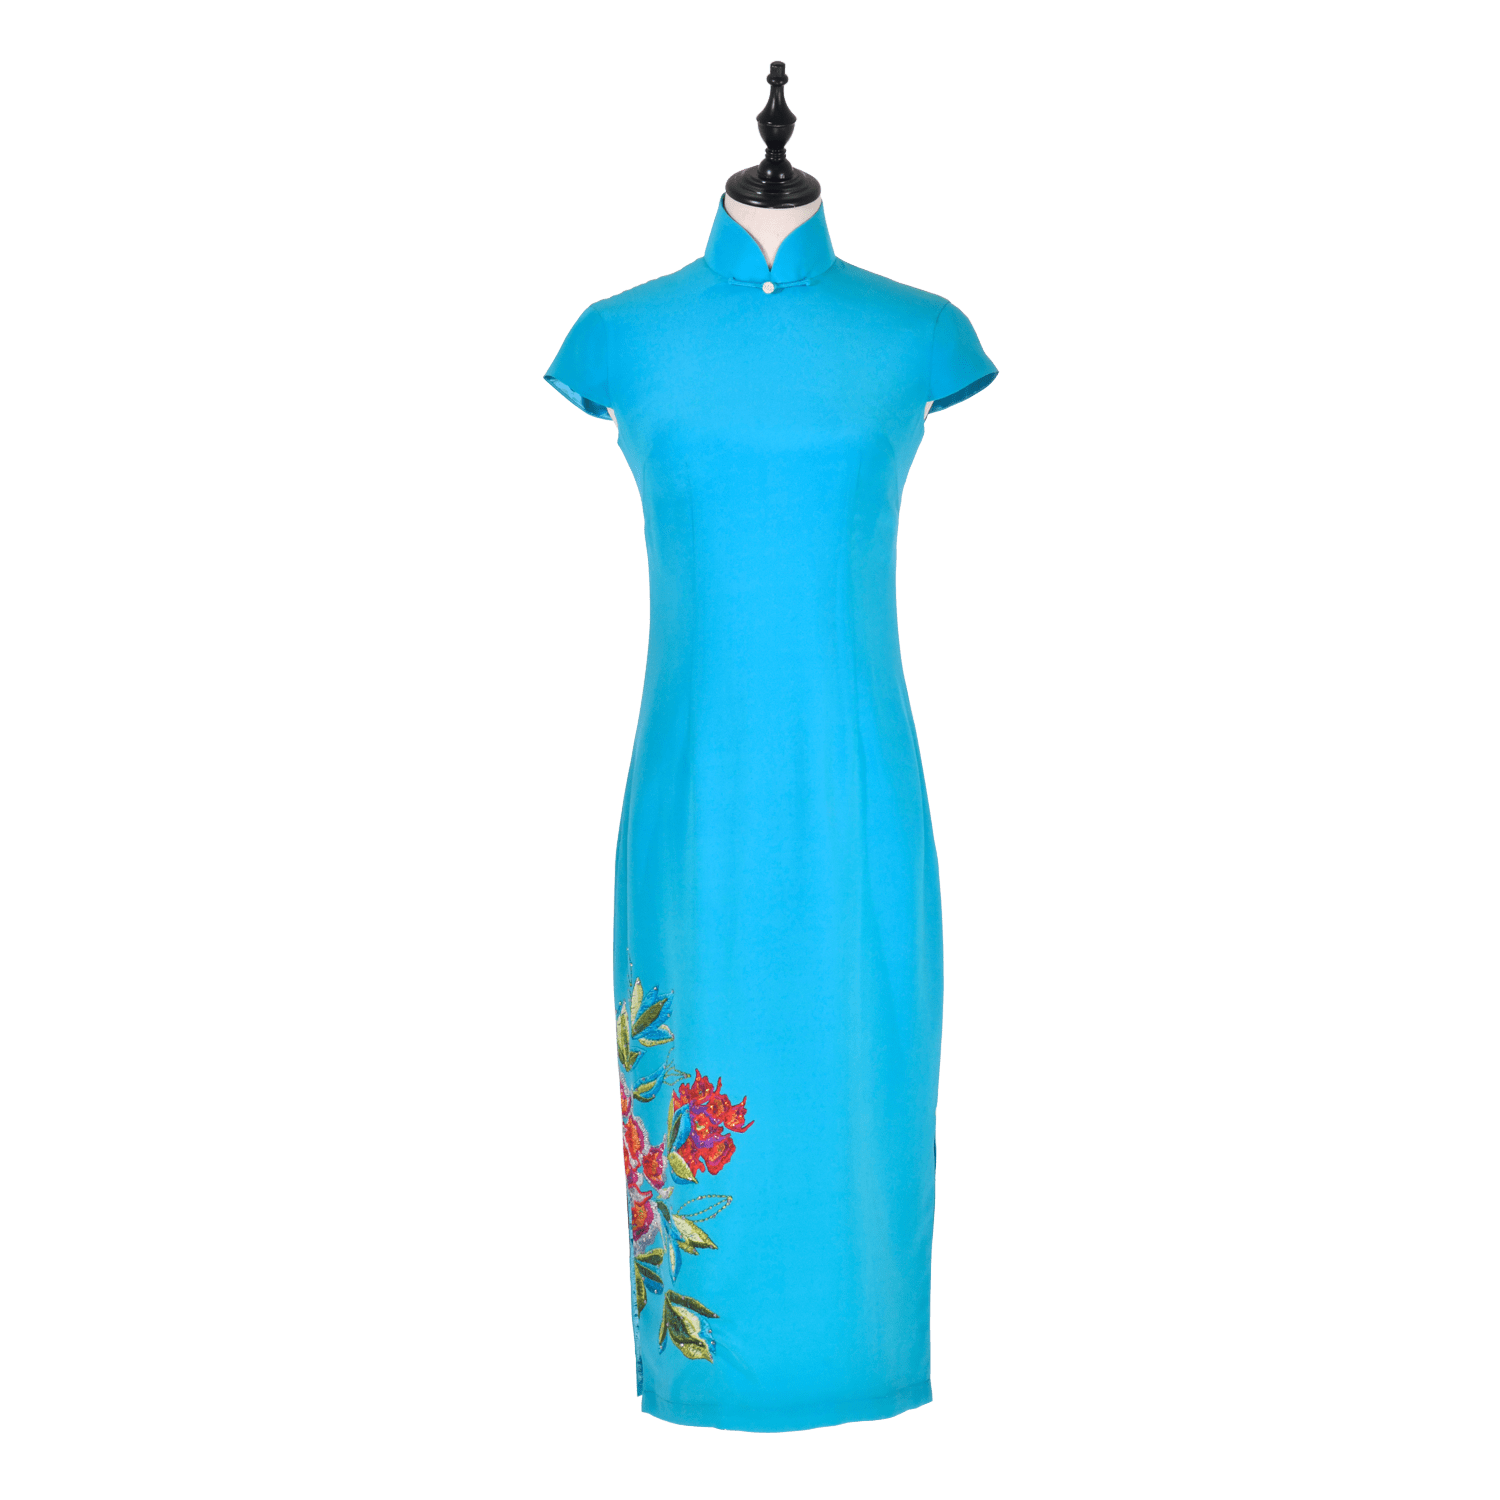 【PEONY】 100% Silk Crystal Cheongsam (Cap Sleeve / Regular Fit) - THE SPARKLE COLLECTION by GERMAN POOL